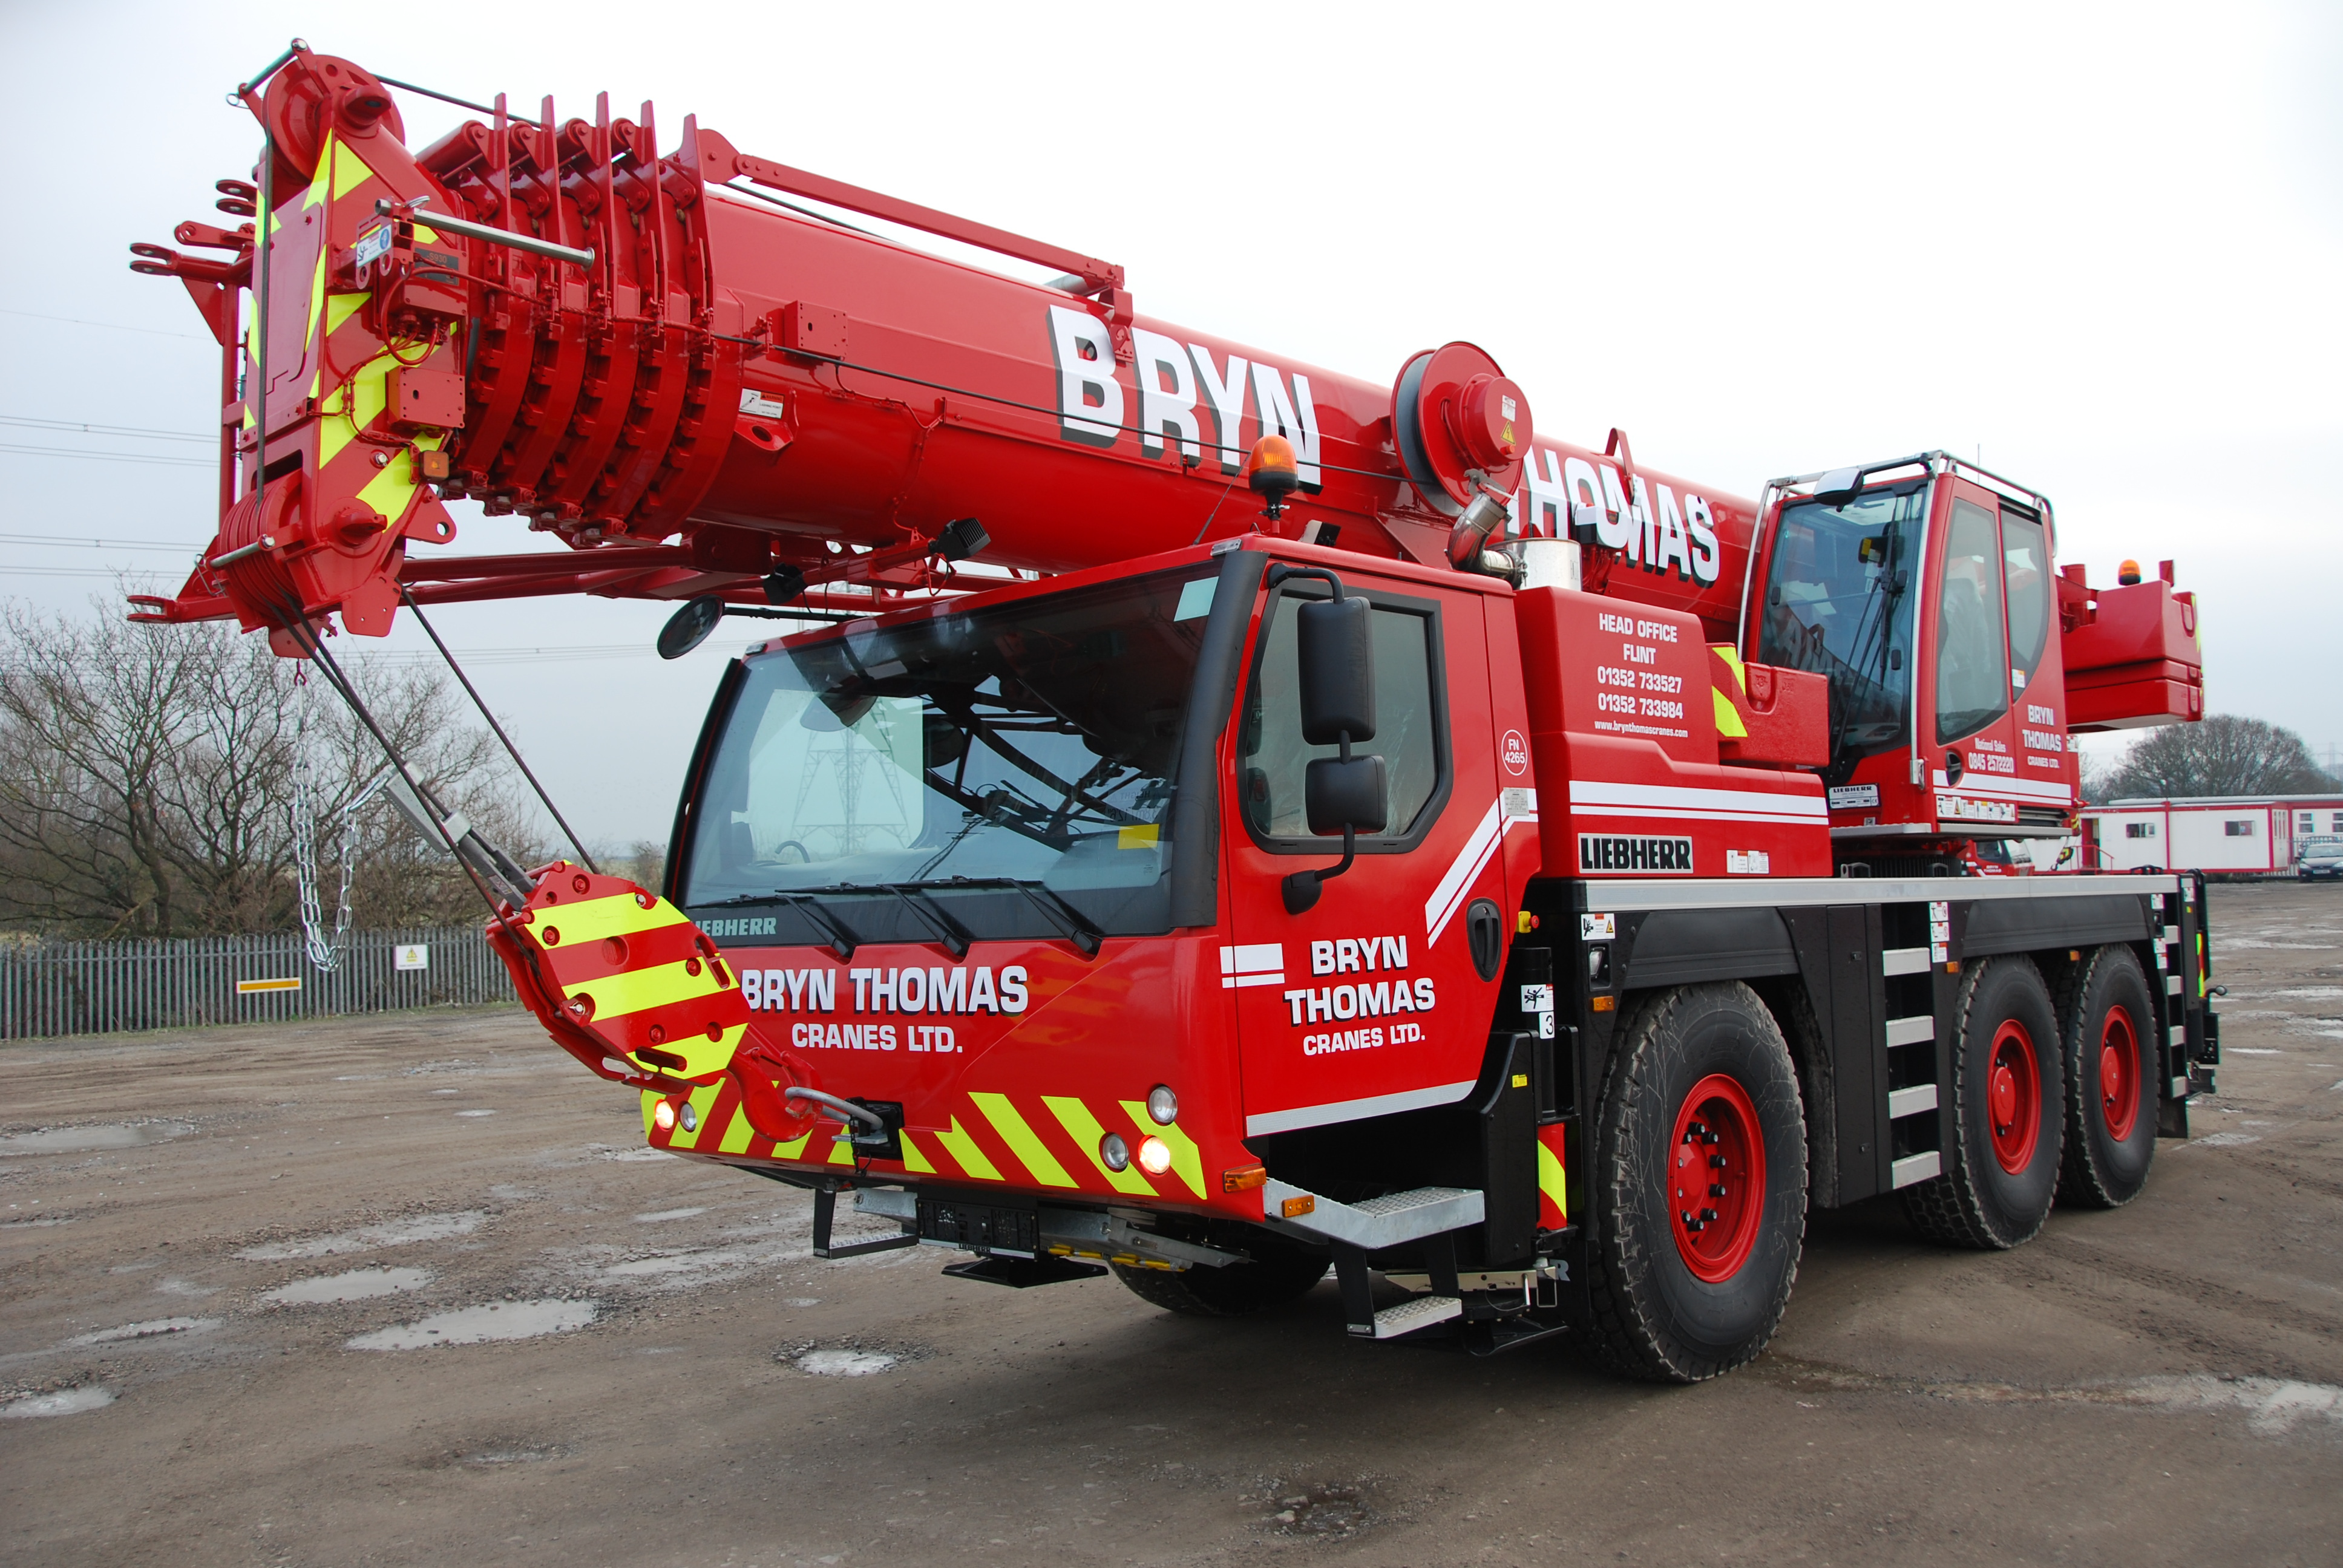 One of our Fleet at Bryn Thomas Crane Hire